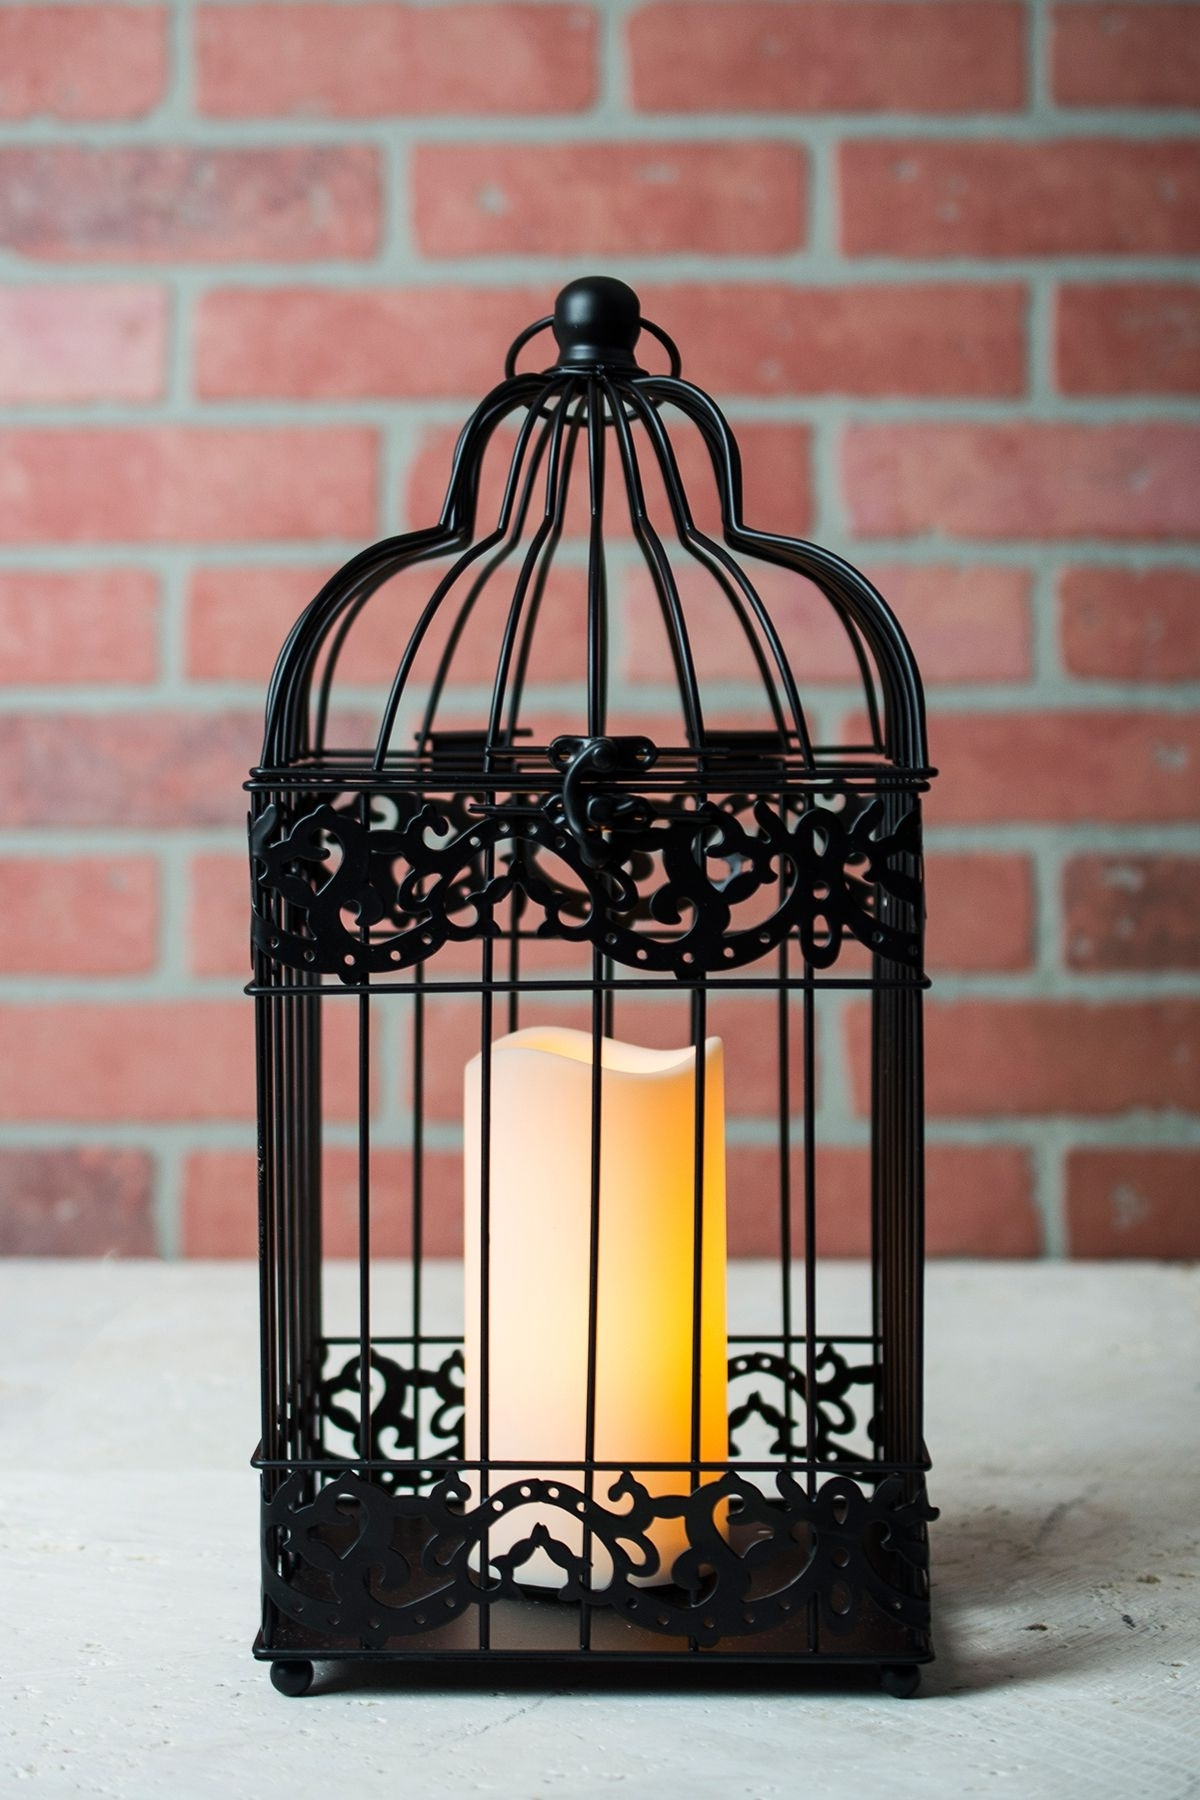 2018 Outdoor Lanterns With Battery Operated Candles Throughout Black Bird Cage Candle Lantern Battery Operated 15in (View 20 of 20)